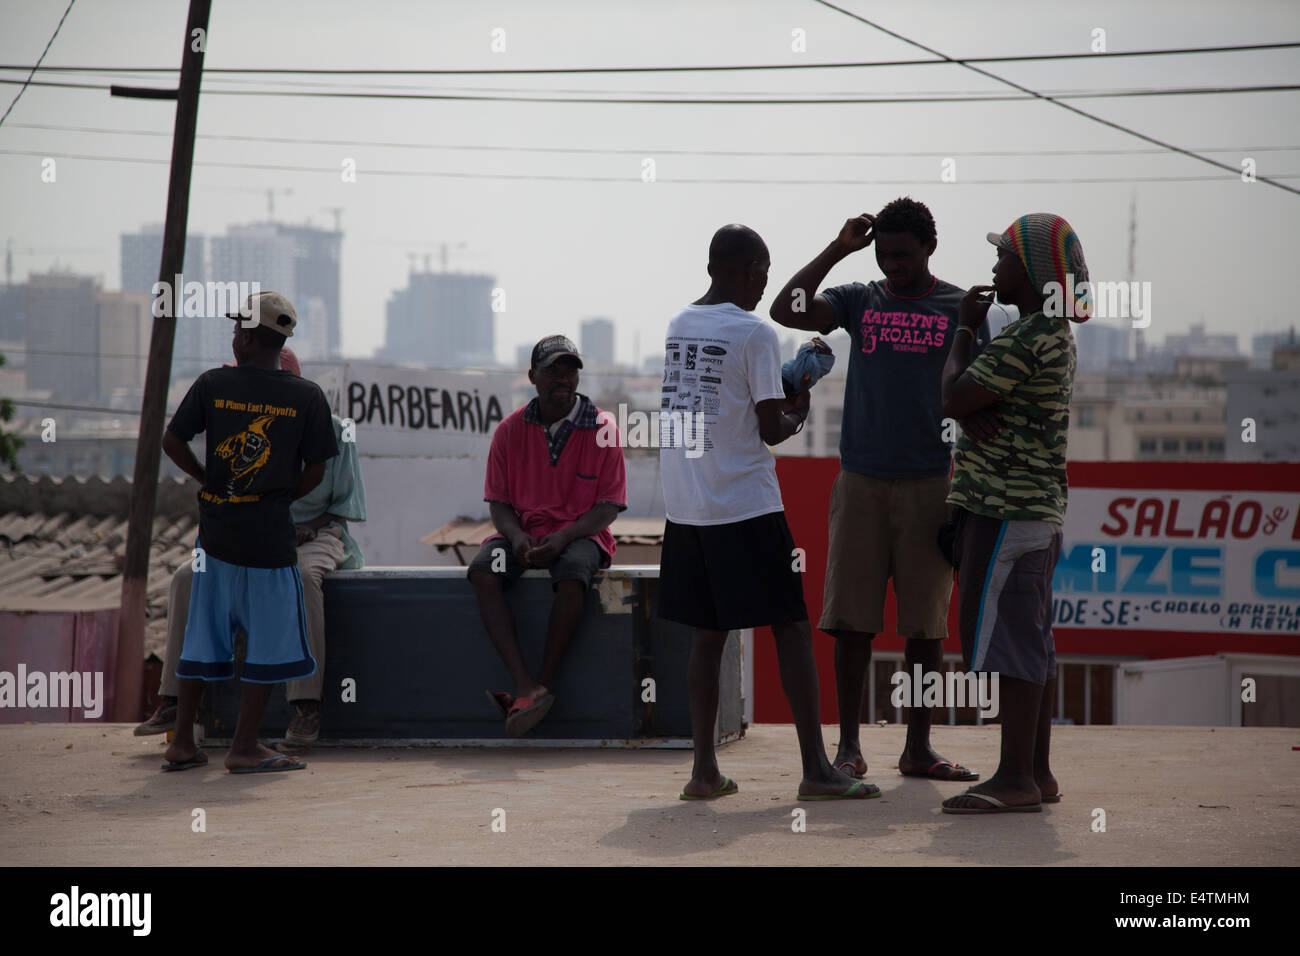 Angola, Luanda, city life Africa daily life pedestrians with city in background - Stock Image